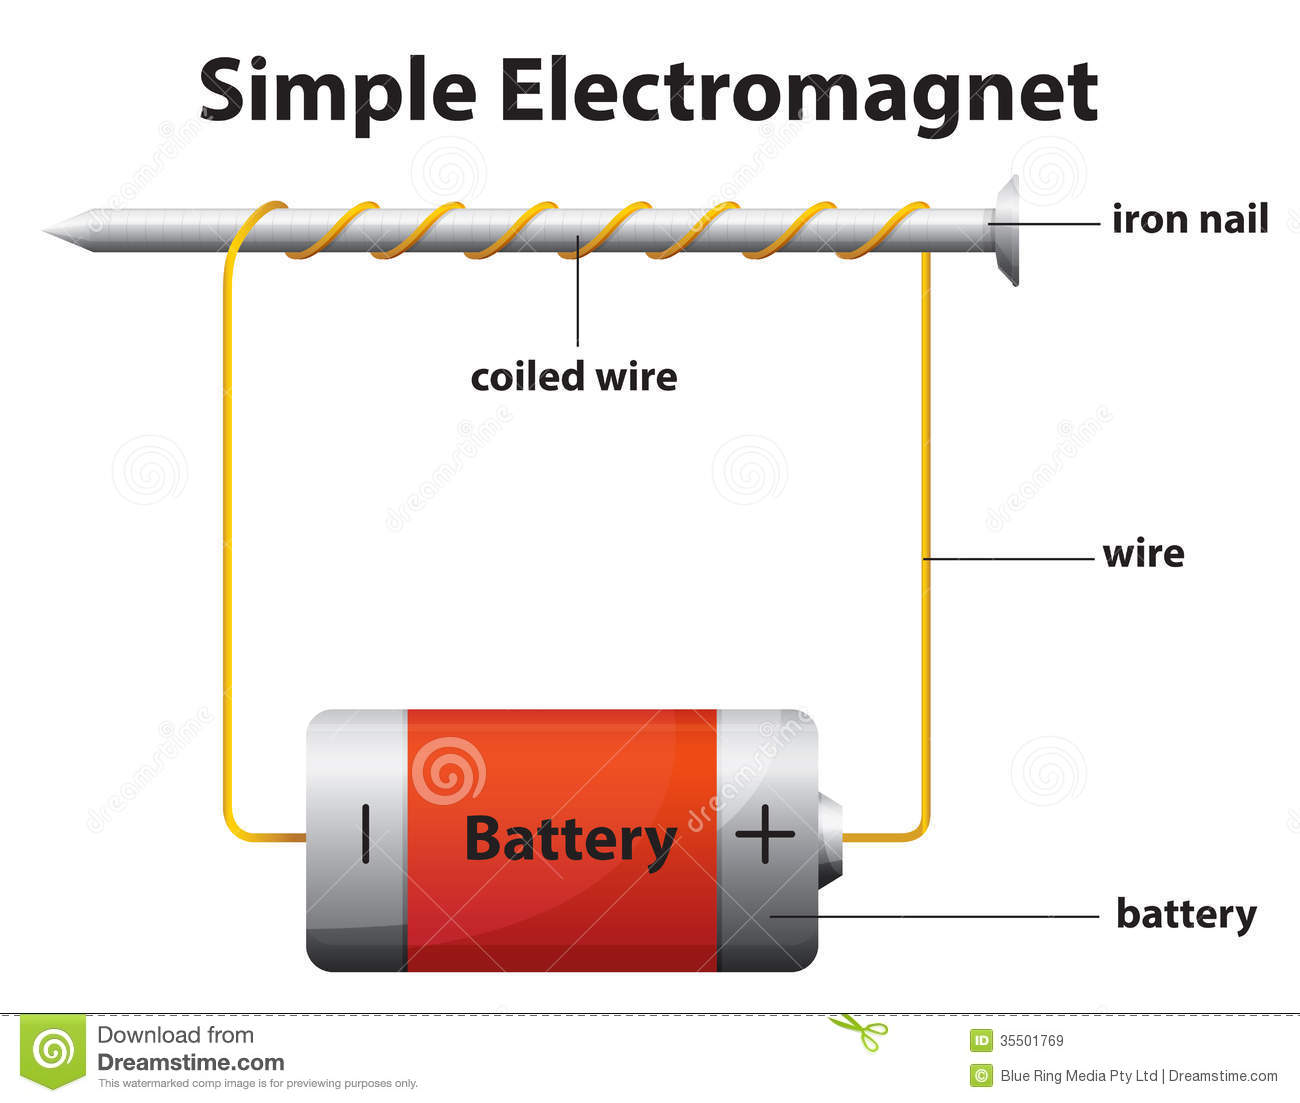 Simple Electromagnet Illustration White Background on How Simple Electric Motors Work